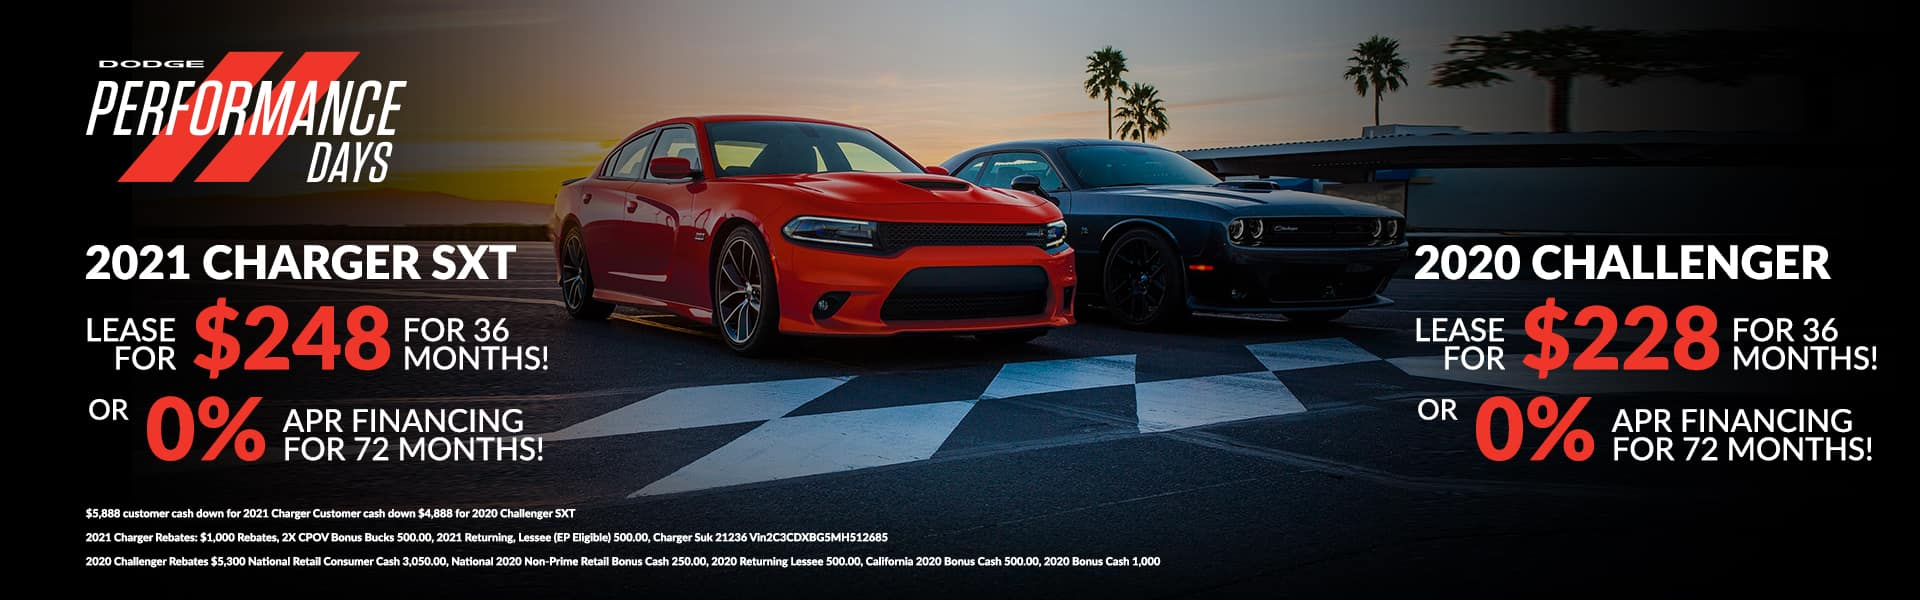 2021 Charger SXT LEASE for 248+ tax for 36 months! or 0% APR Financing for 72 months! 2020 Challenger: SXT LEASE for 228+ tax for 36 months! or 0% APR Financing for 72 months!